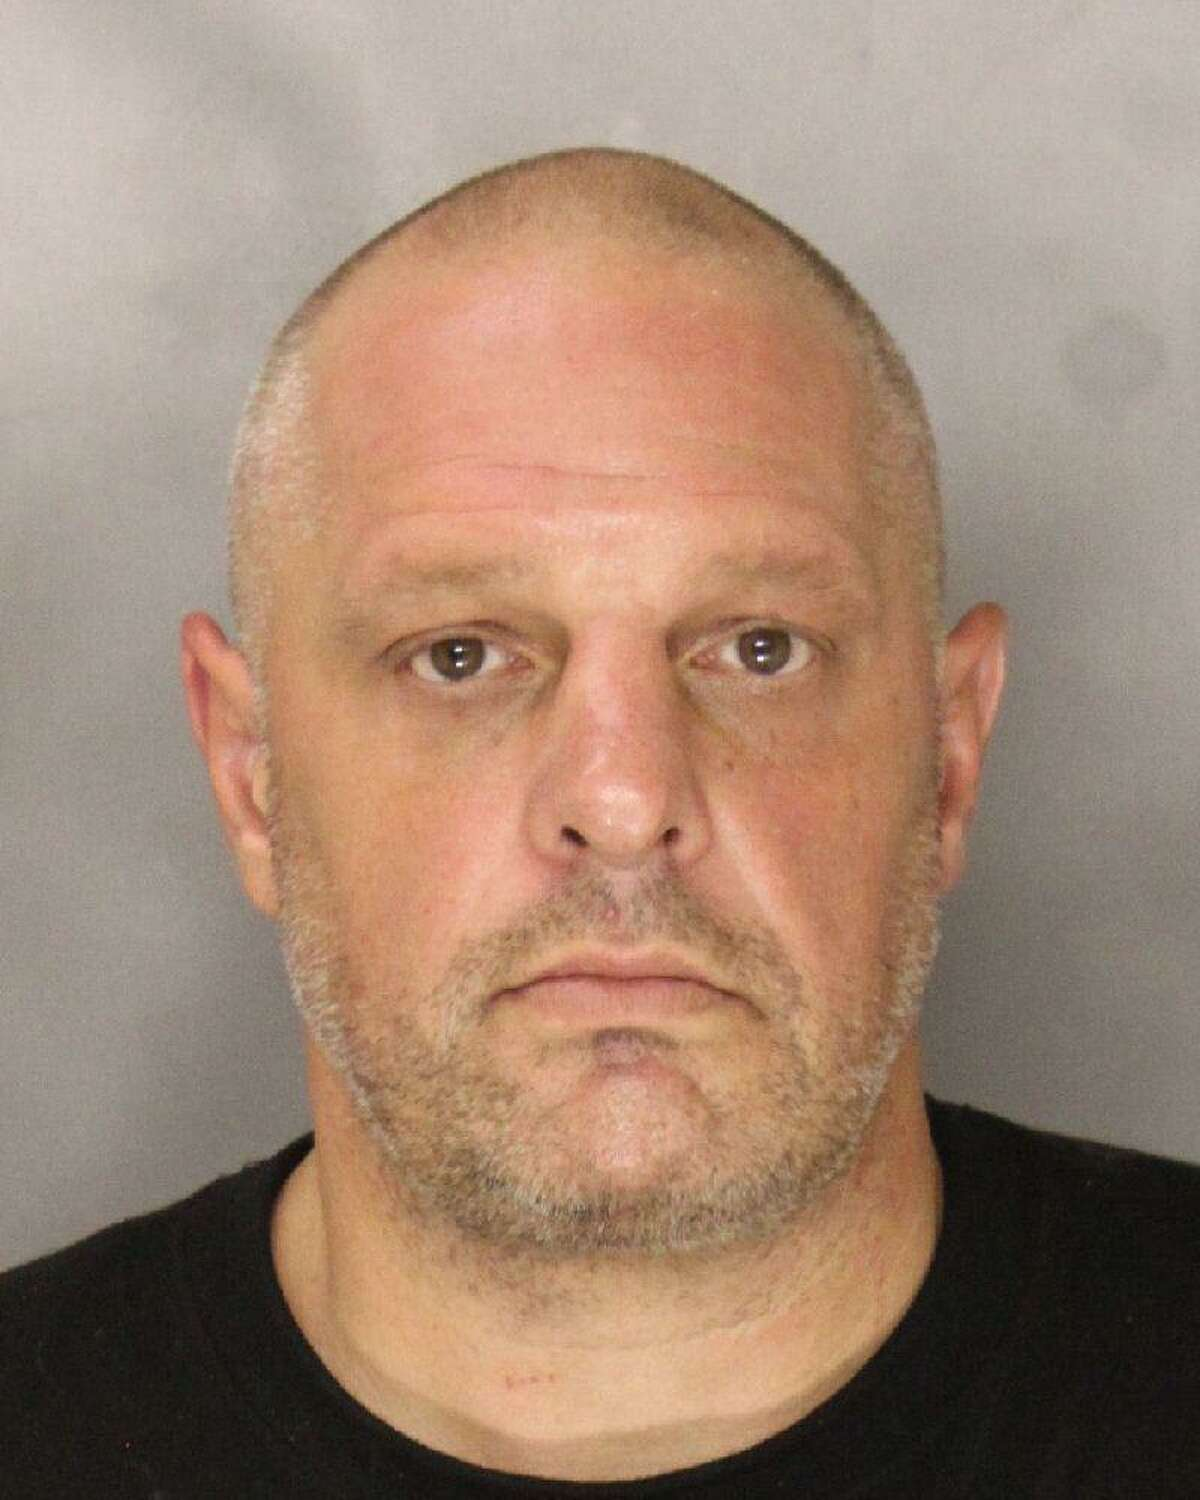 Brian Ross, 49, was arrested on suspicion of attempted robbery, burglary and criminal conspiracy.